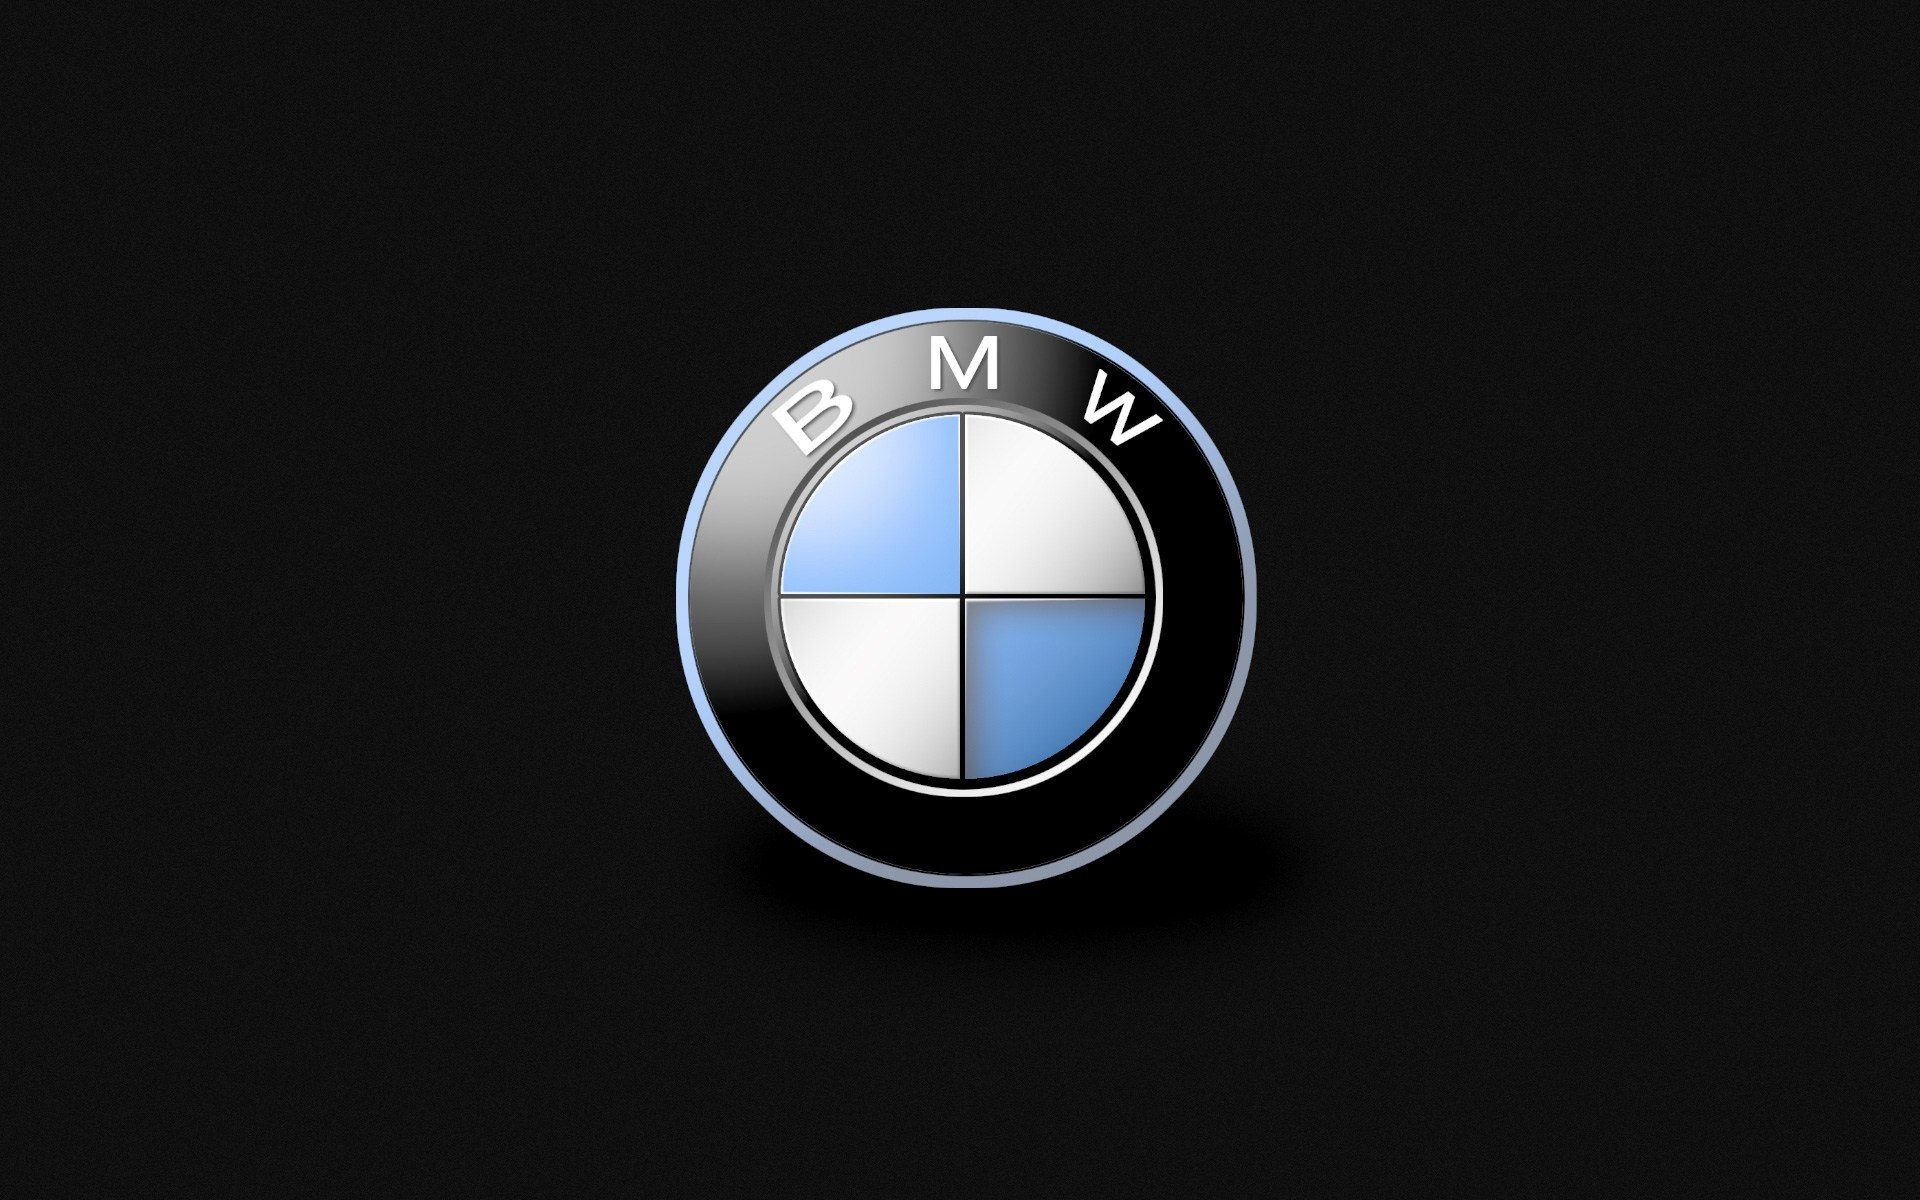 Latest A Beautiful Collection Of Car Logos Car Wallpapers Hd Free Download